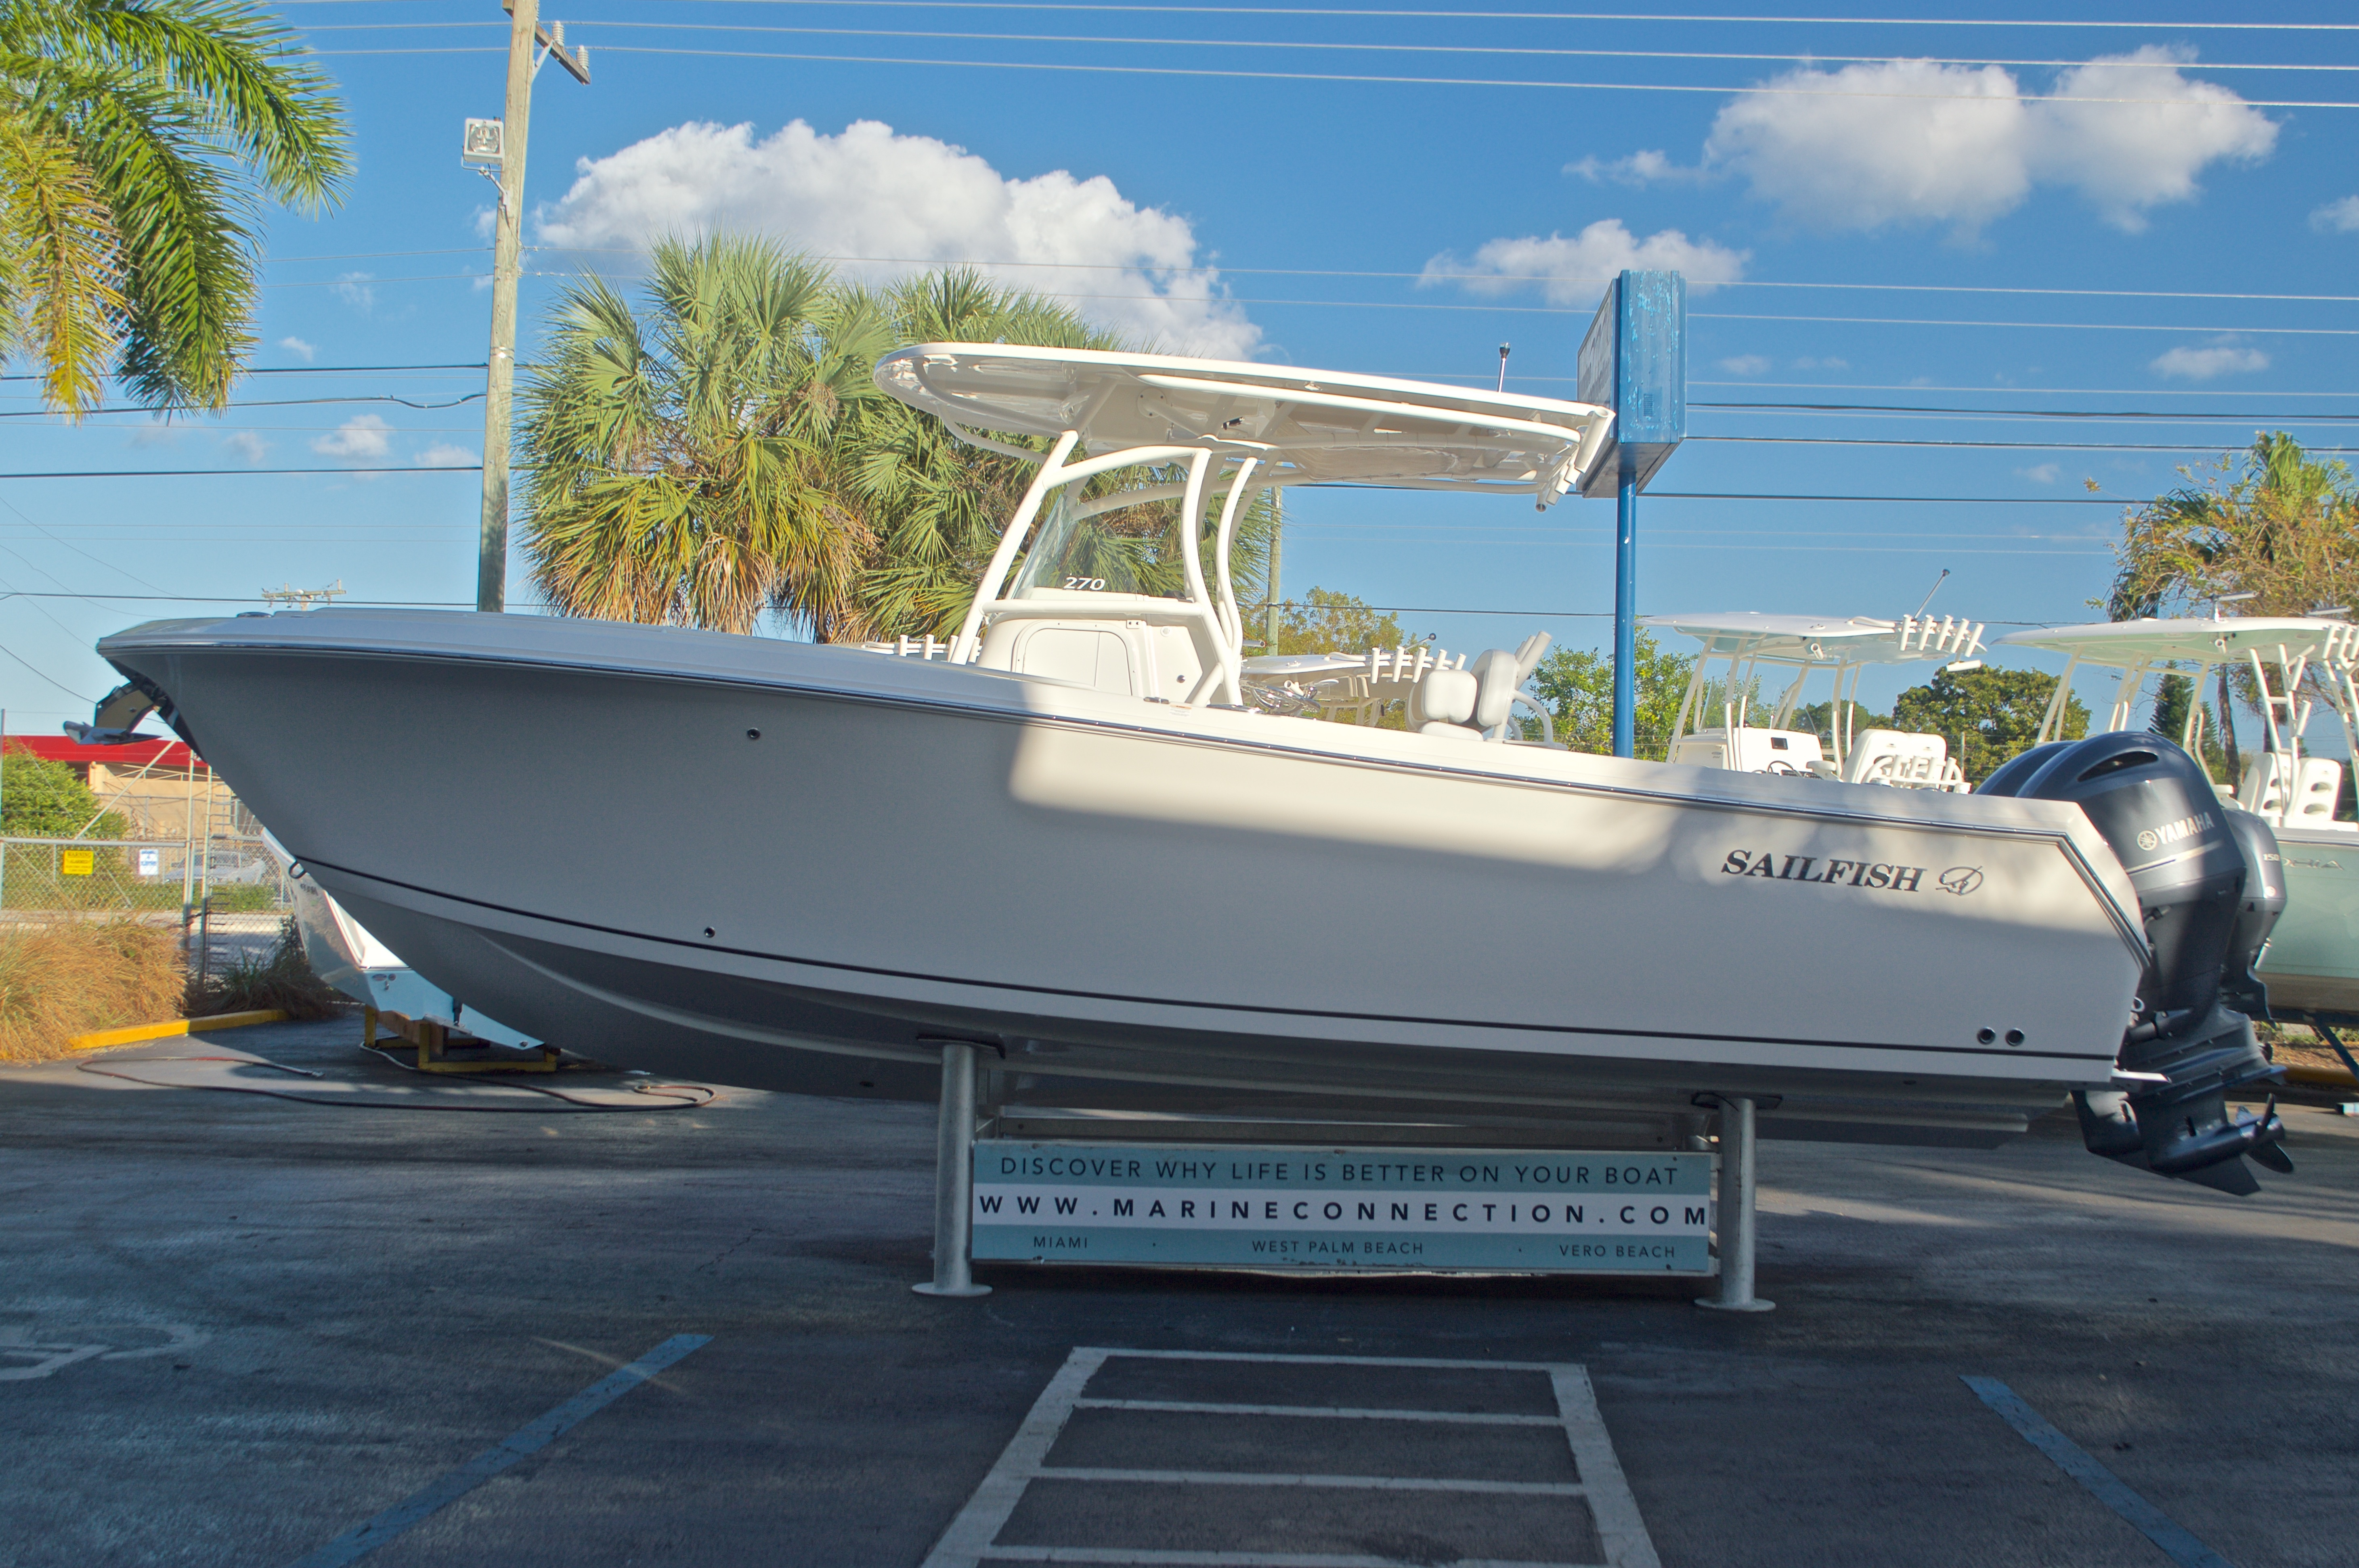 Thumbnail 4 for New 2016 Sailfish 270 CC Center Console boat for sale in Miami, FL